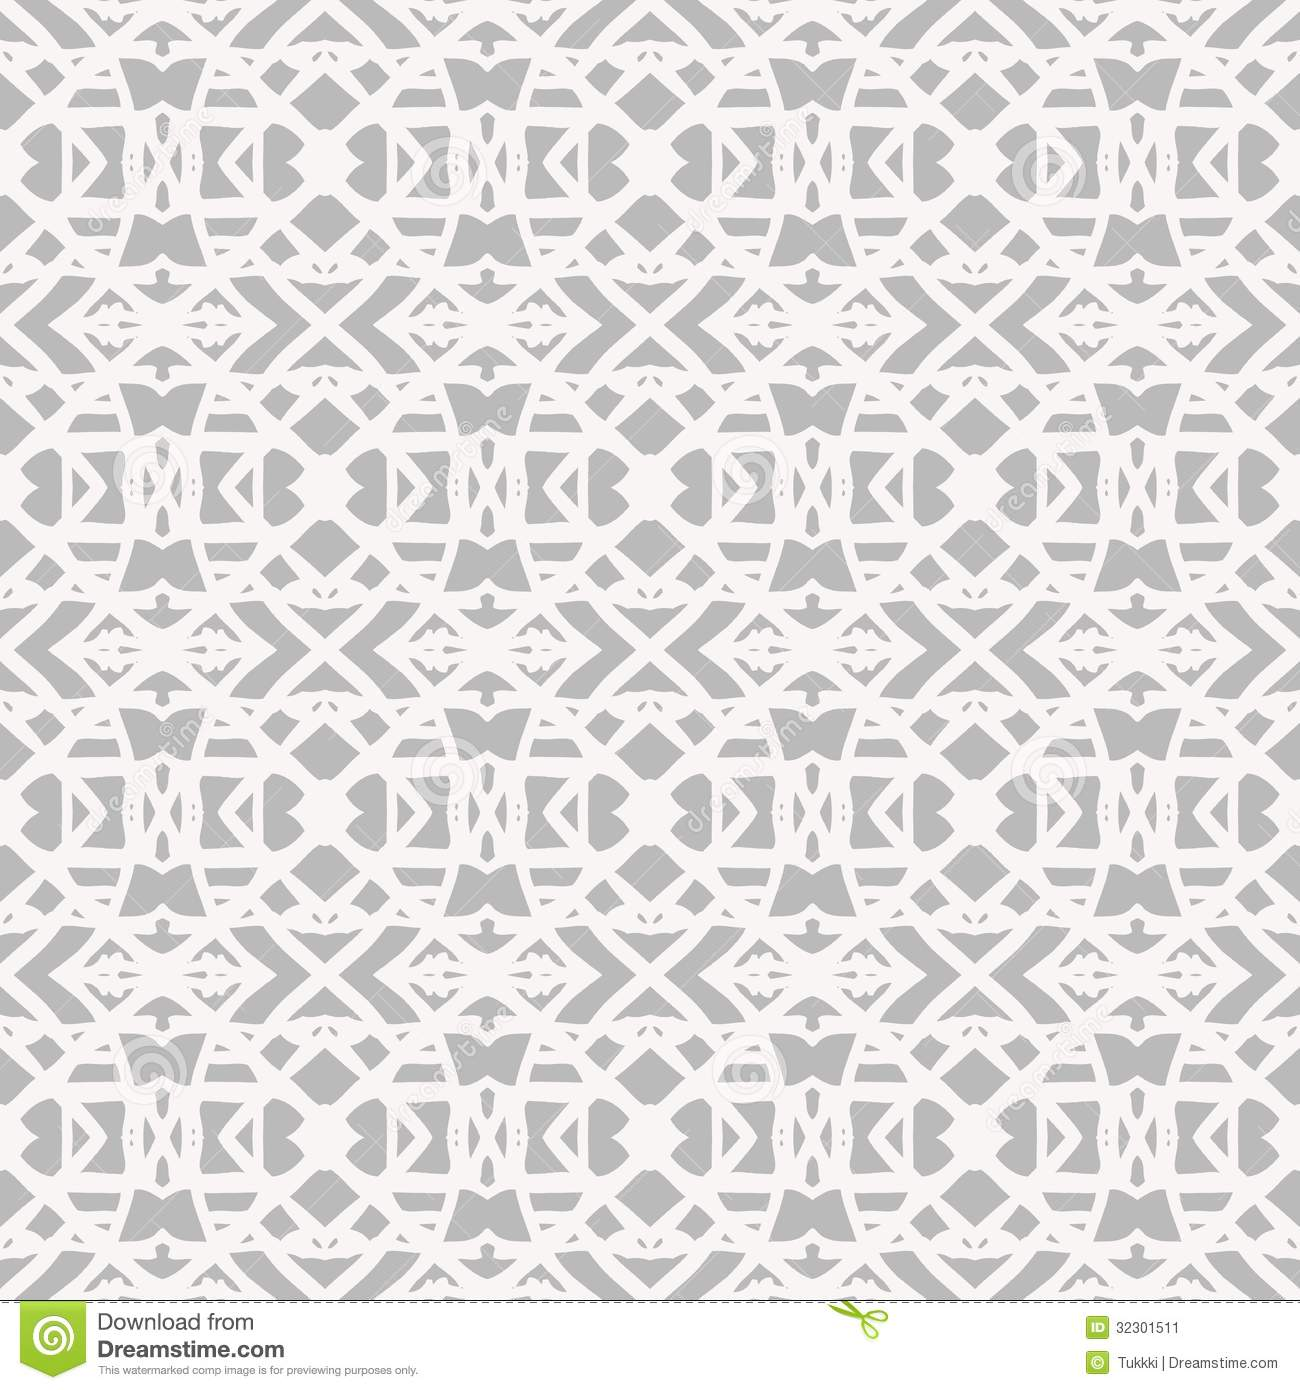 Popular   Wallpaper Horse Pattern - lace-pattern-white-shapes-art-deco-style-simple-elegant-grey-silver-background-texture-web-print-holiday-home-decor-32301511  Picture_872748.jpg